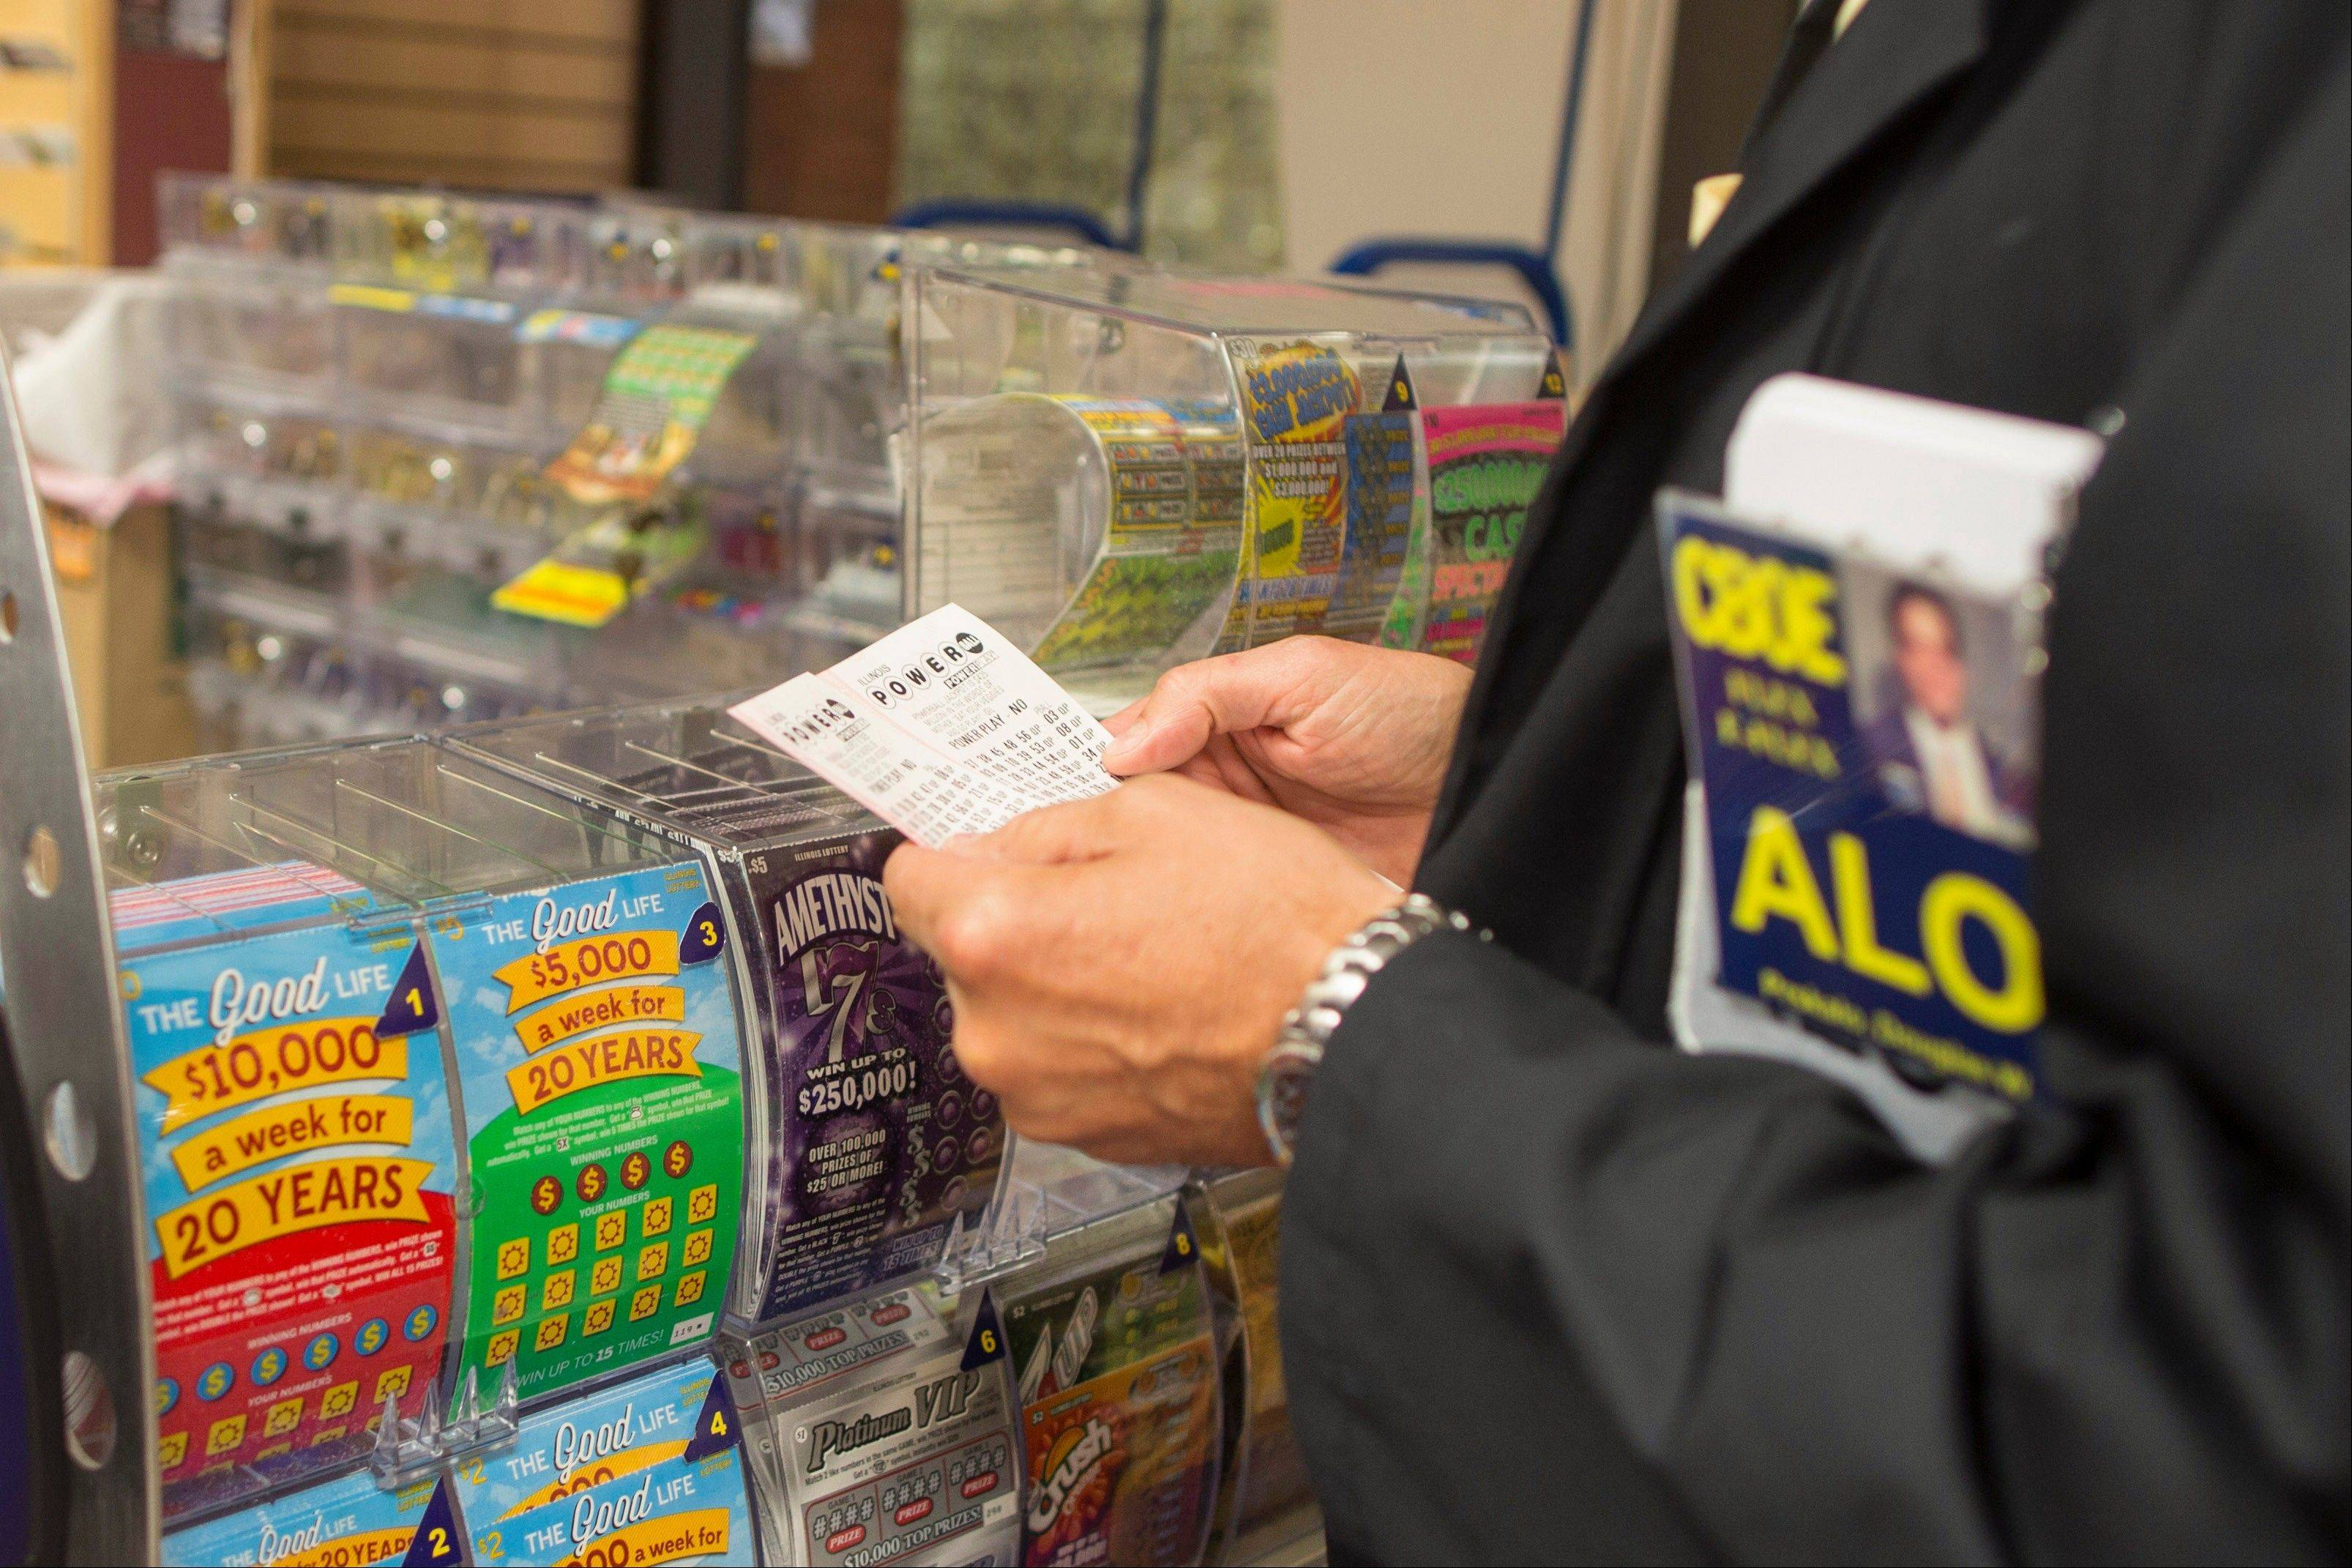 At least three people in two states will split the $448 million Powerball jackpot, after two winning tickets were sold in New Jersey and one was sold in Minnesota, lottery officials said Thursday.